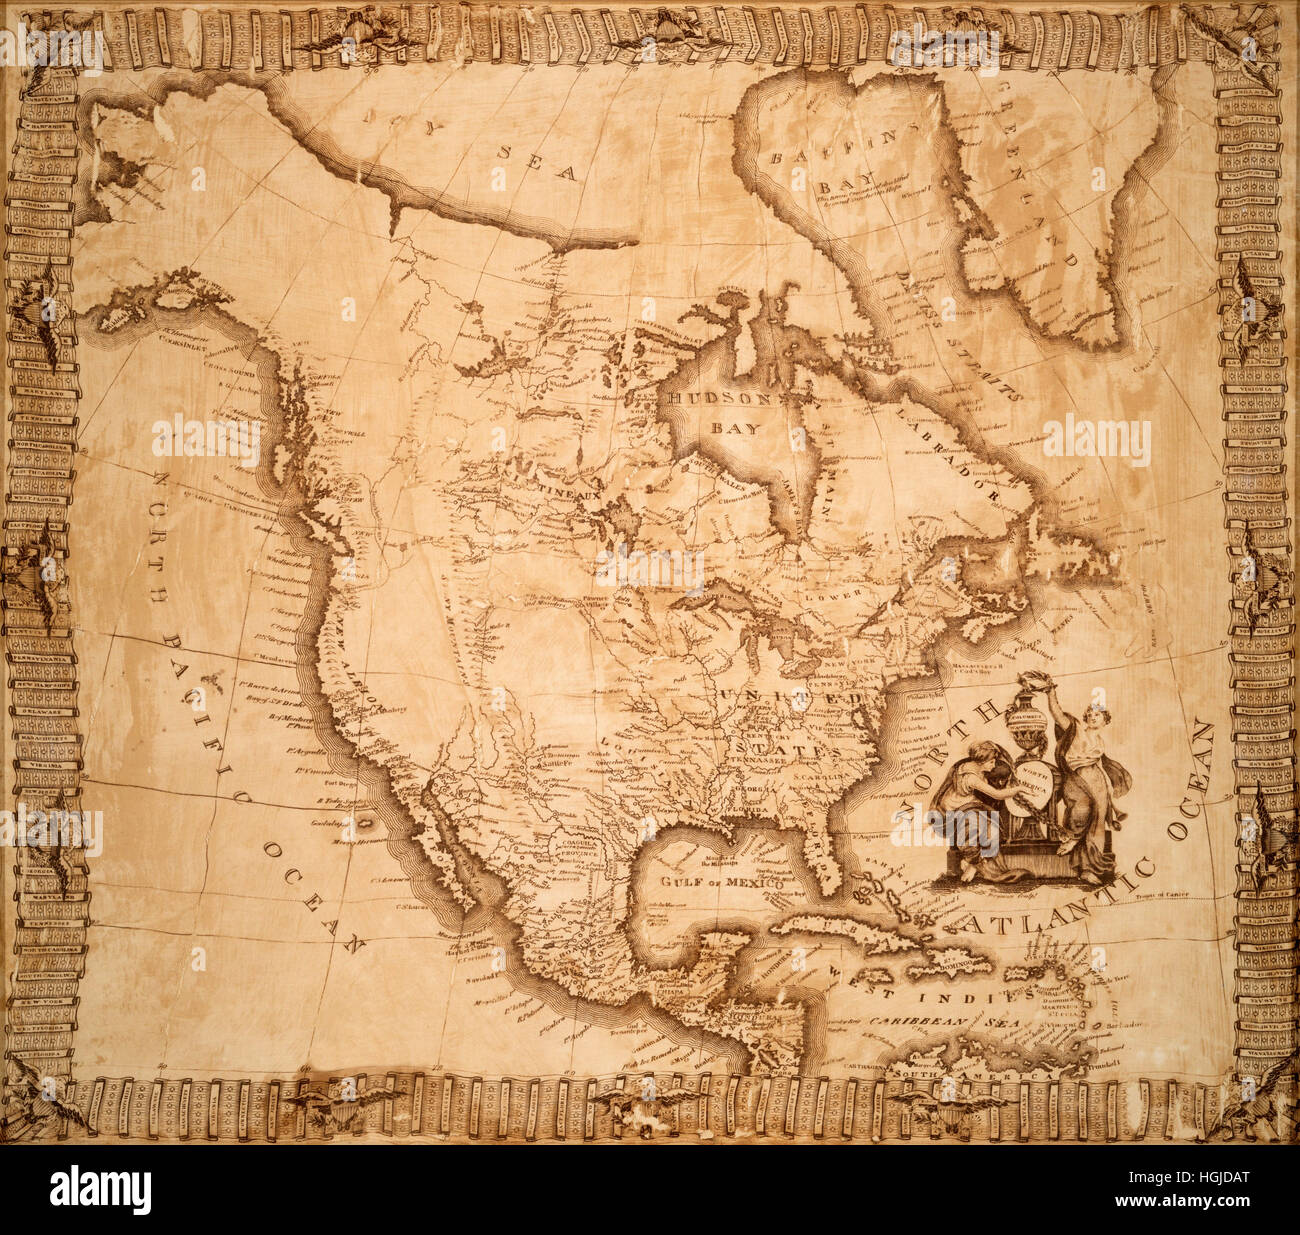 Map Of America In 1800.Map Of America 1800 Stock Photo 130712704 Alamy